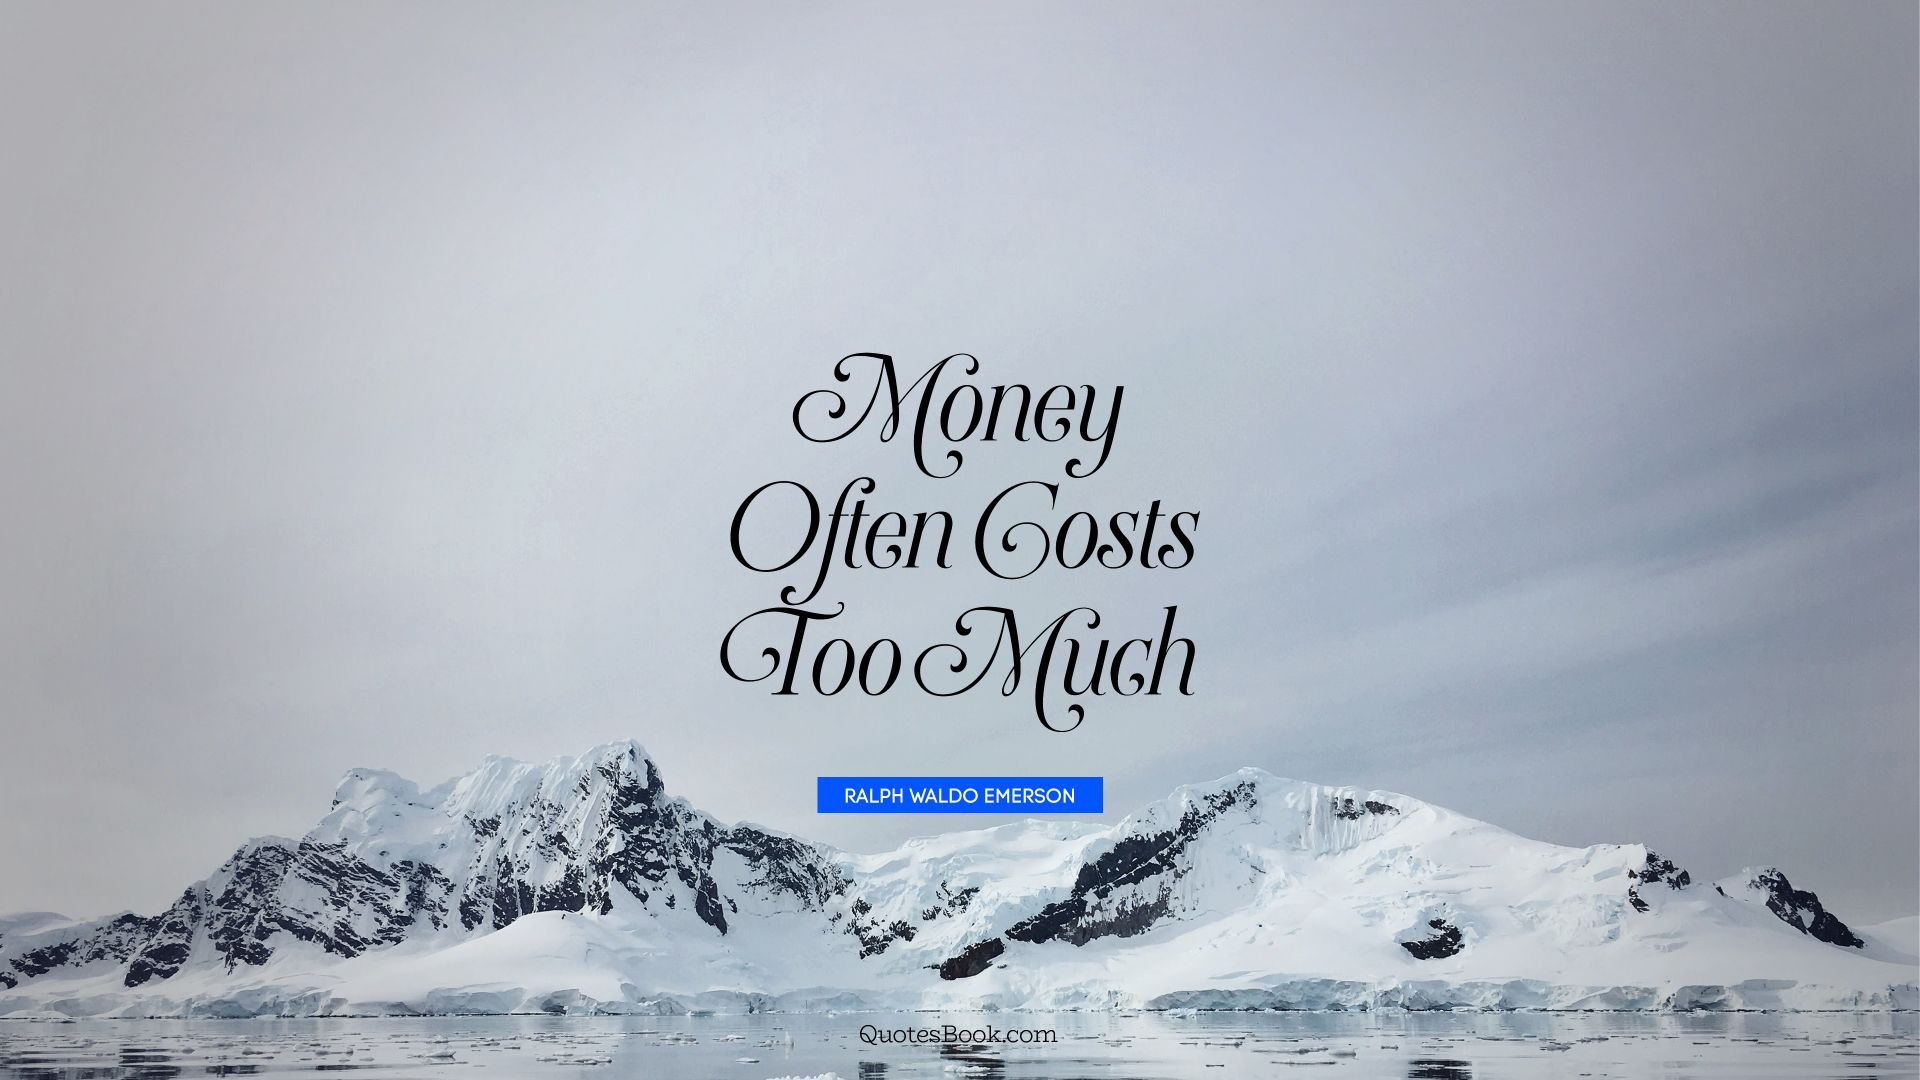 Money often costs too much. - Quote by Ralph Waldo Emerson